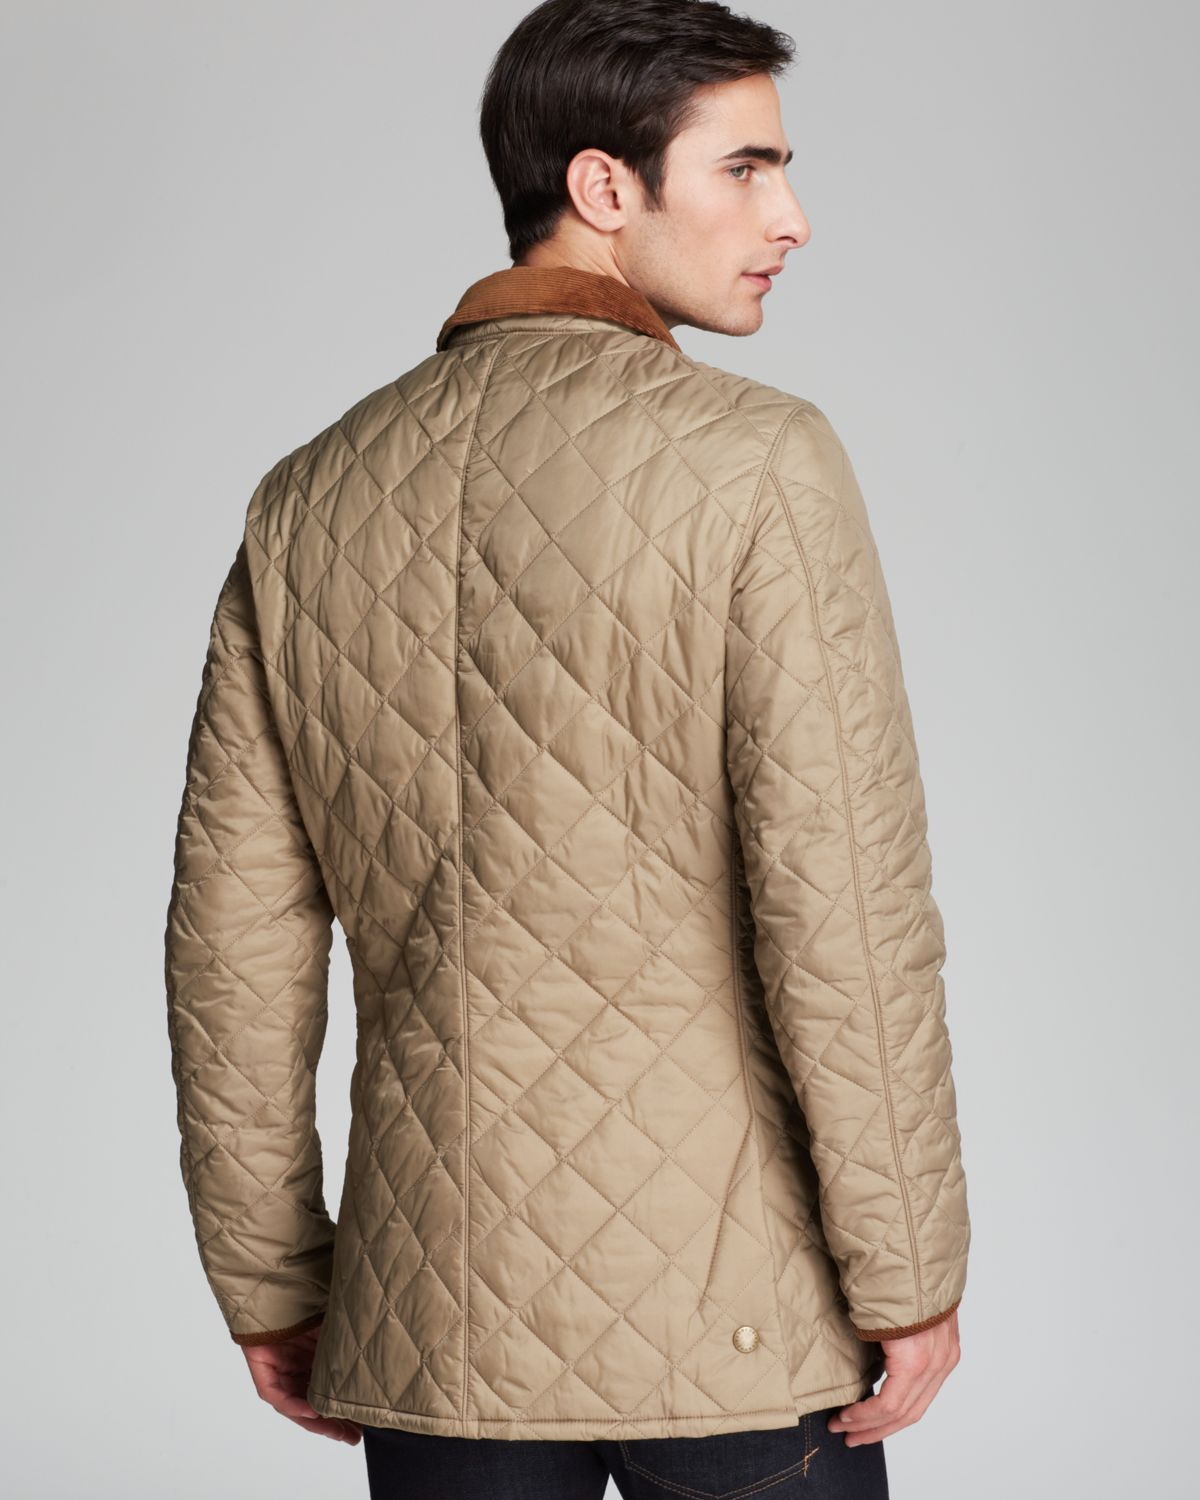 Lyst Barbour Pantone Collection Chip Diamond Quilted Jacket In